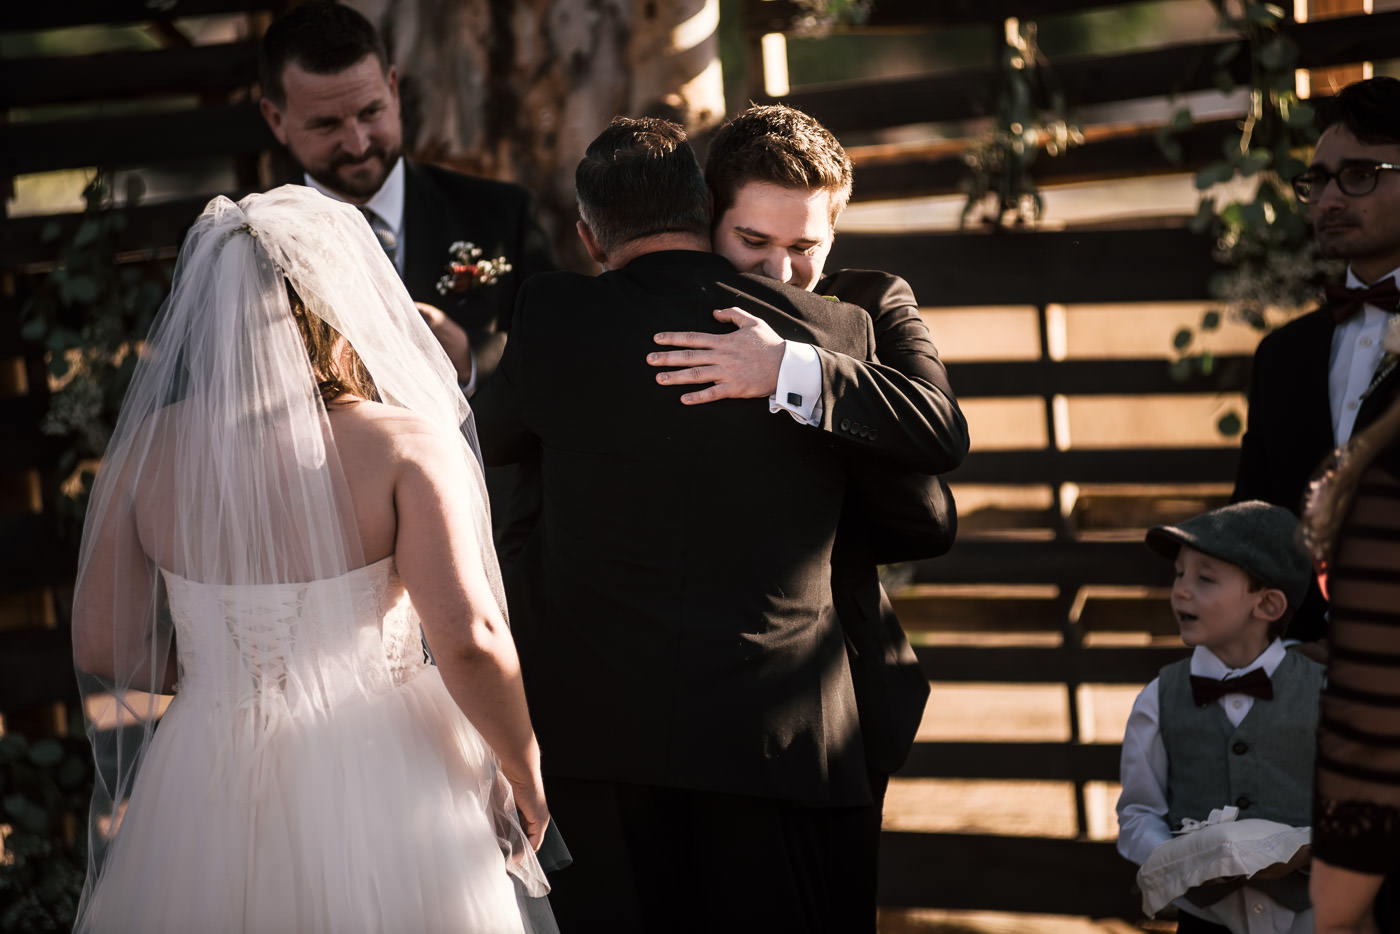 Groom hugs his father in law in touching photograph at their Temecula wedding.